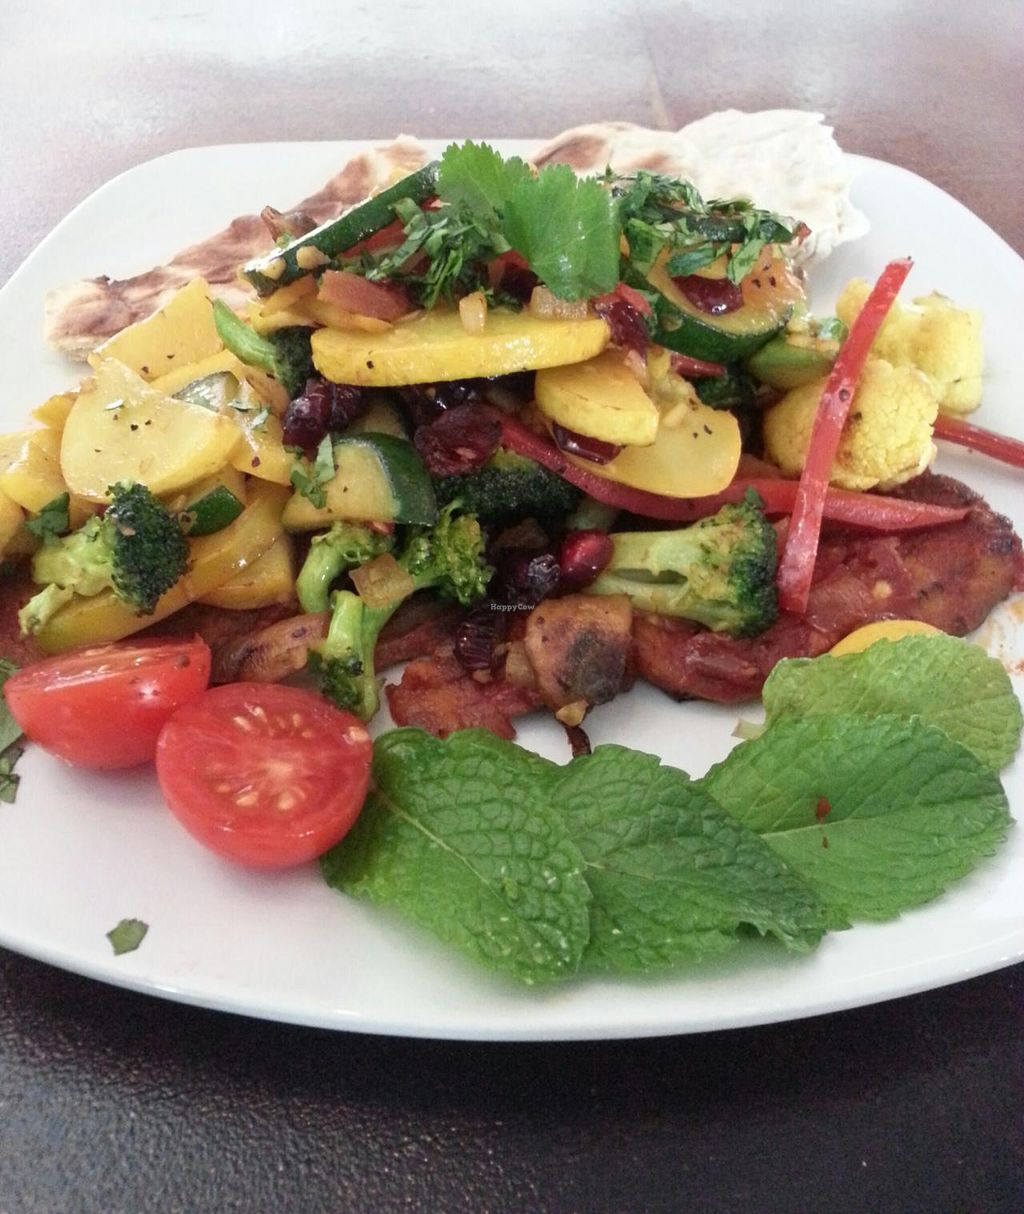 """Photo of CLOSED: Nush  by <a href=""""/members/profile/ErickCedeno"""">ErickCedeno</a> <br/>Eggplant with Roasted Vegetables <br/> April 14, 2015  - <a href='/contact/abuse/image/57462/99101'>Report</a>"""